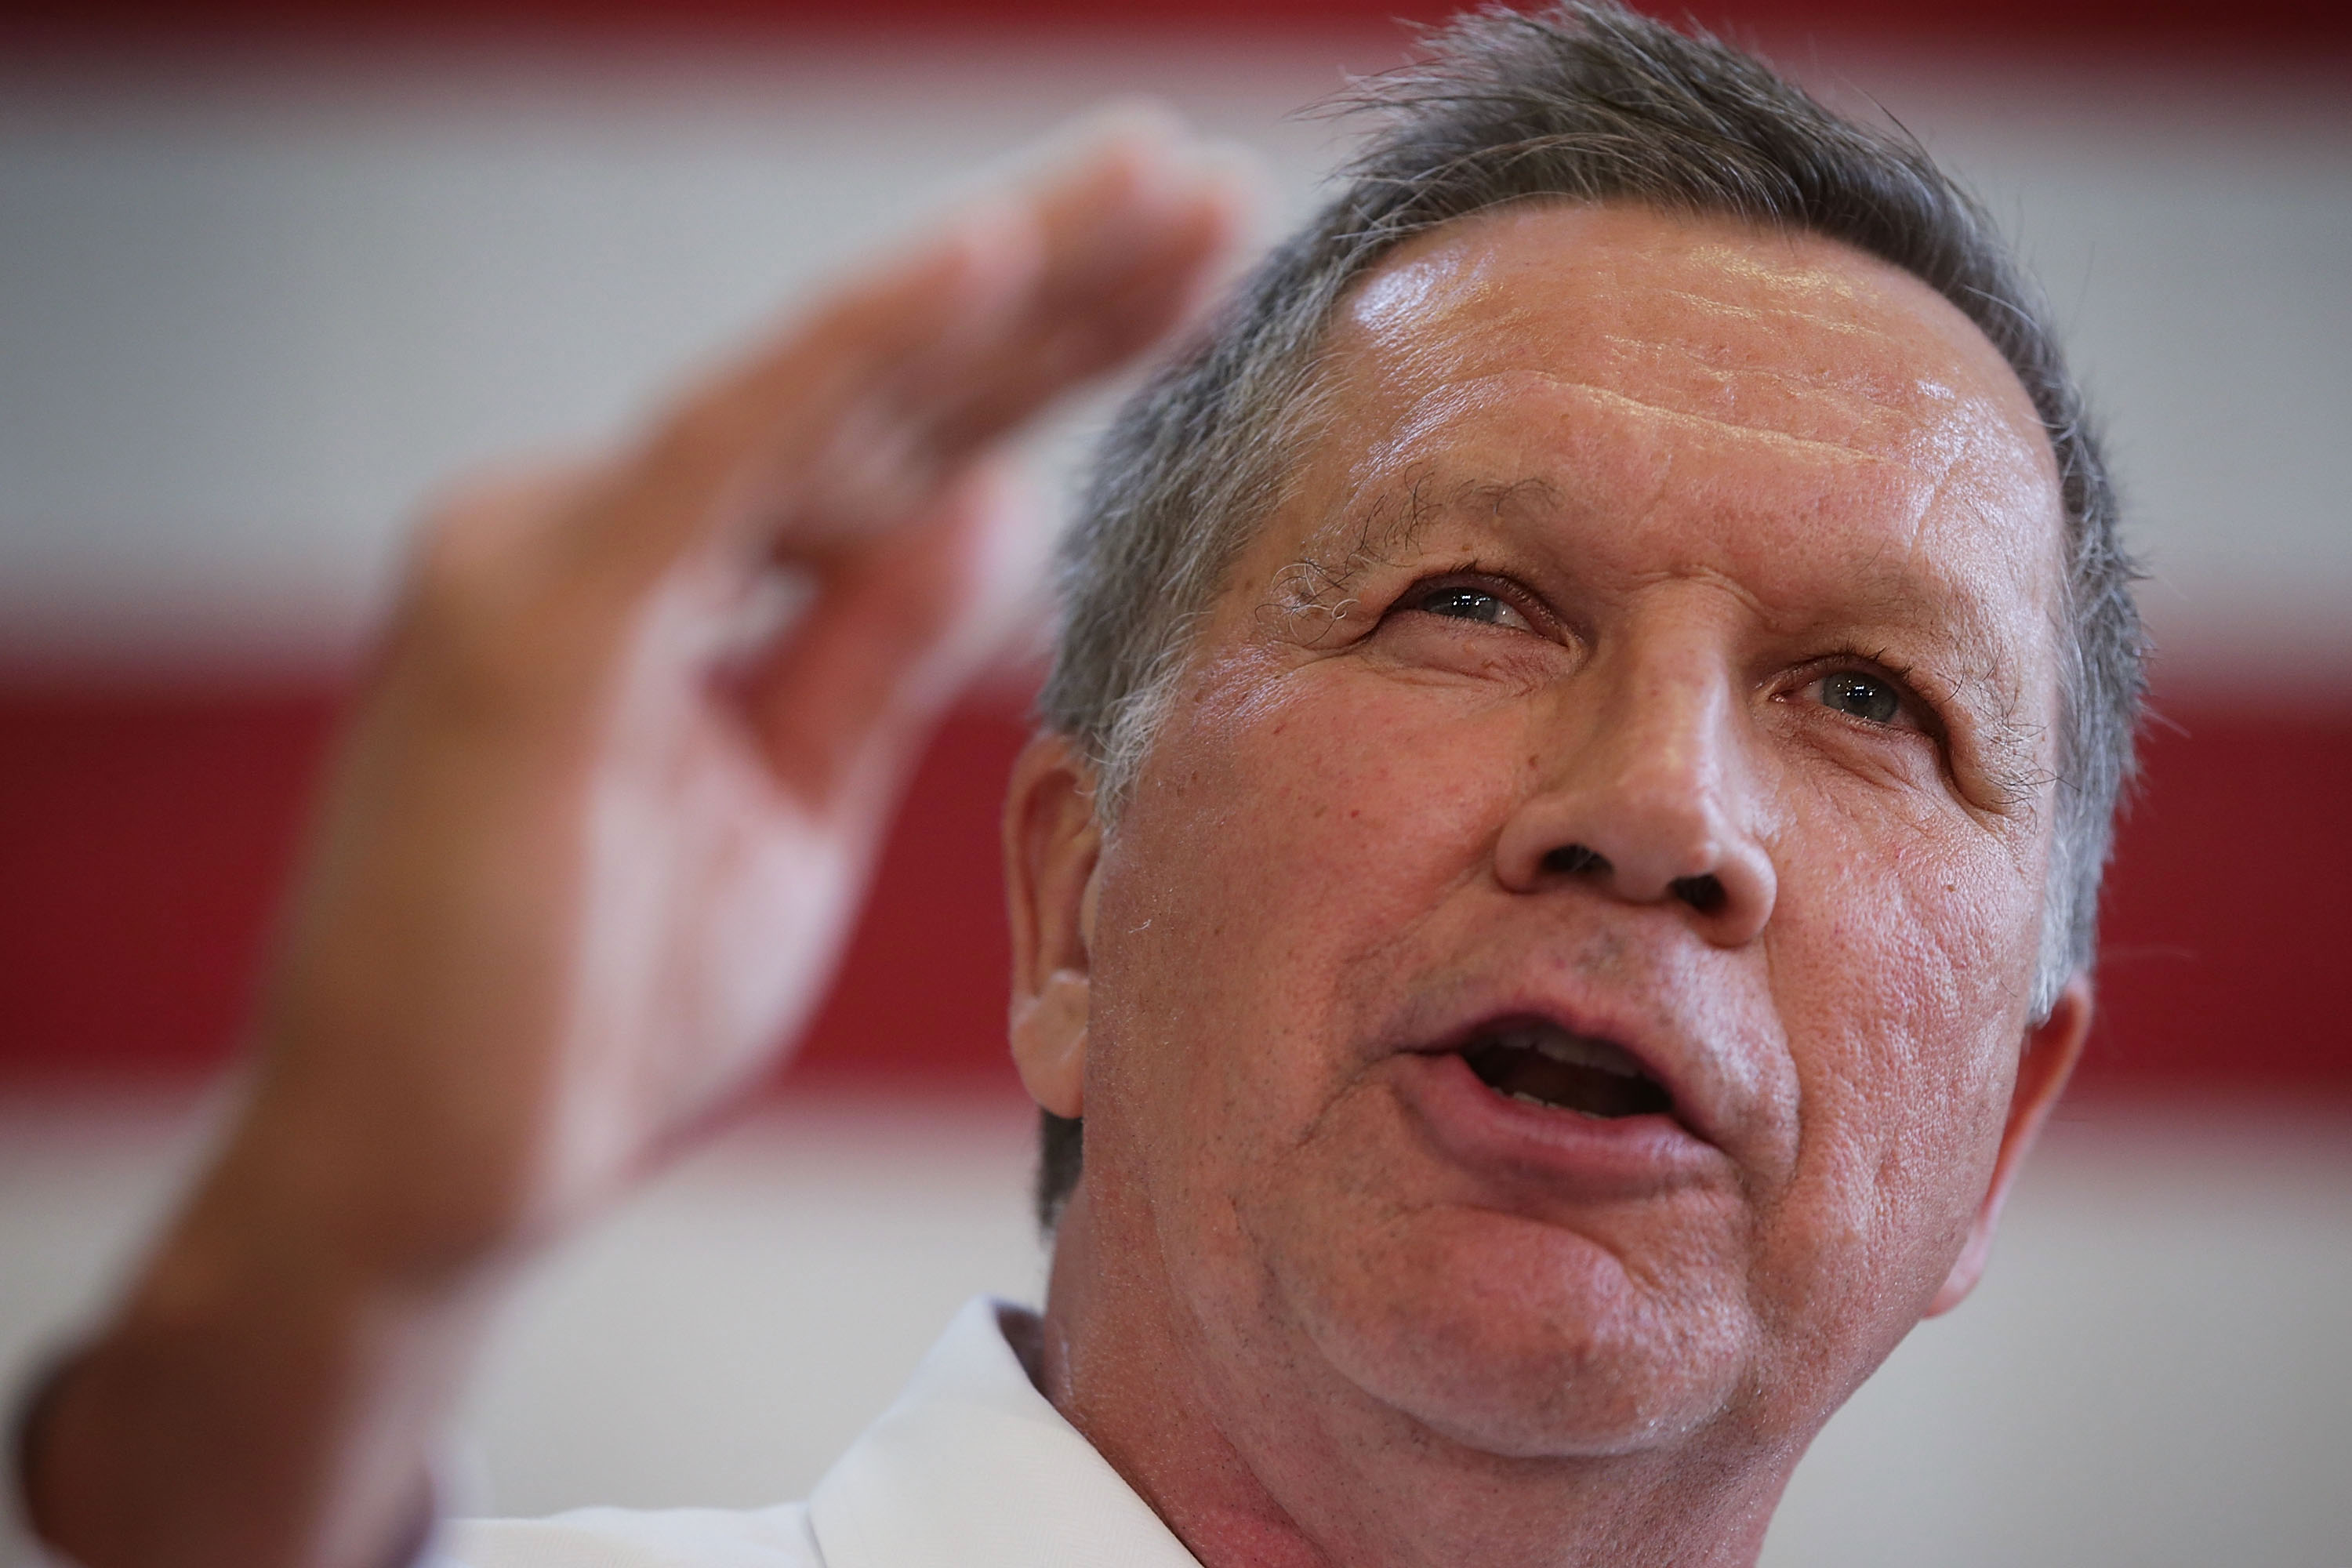 John Kasich Campaigns In Maryland Ahead Of State Primary